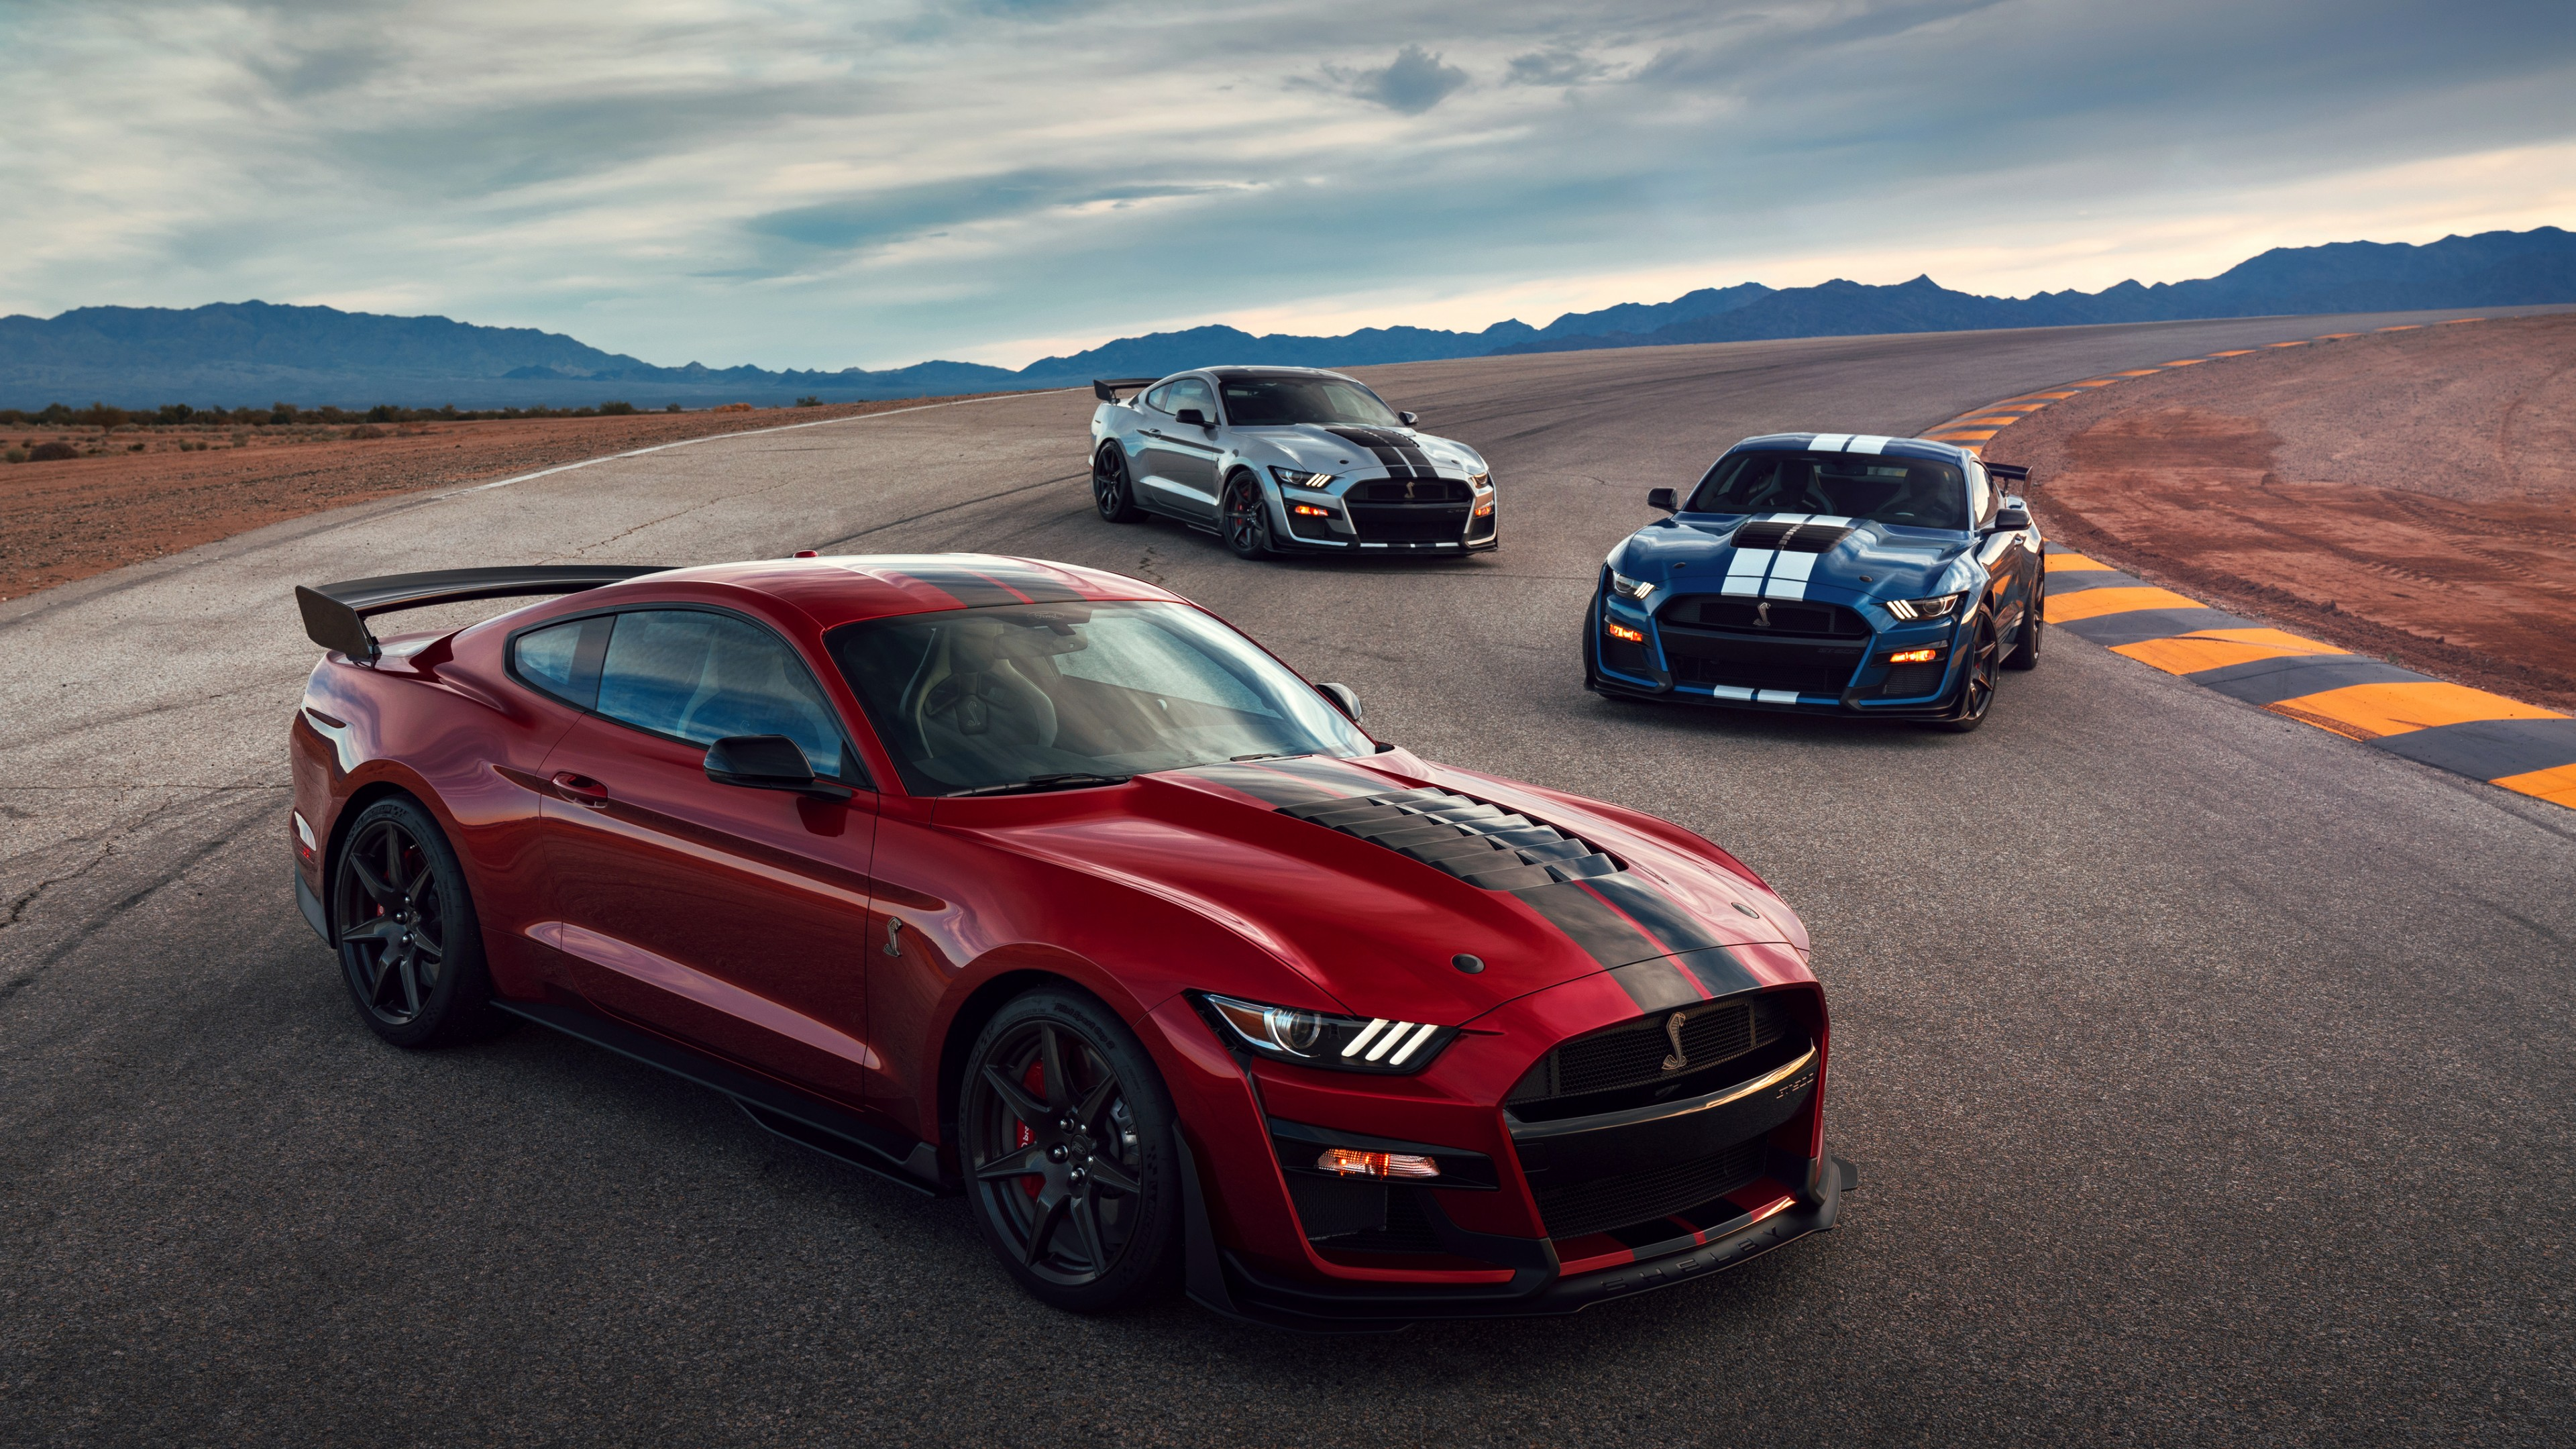 2020 Ford Mustang Shelby GT500 4K 3 Wallpaper | HD Car ...